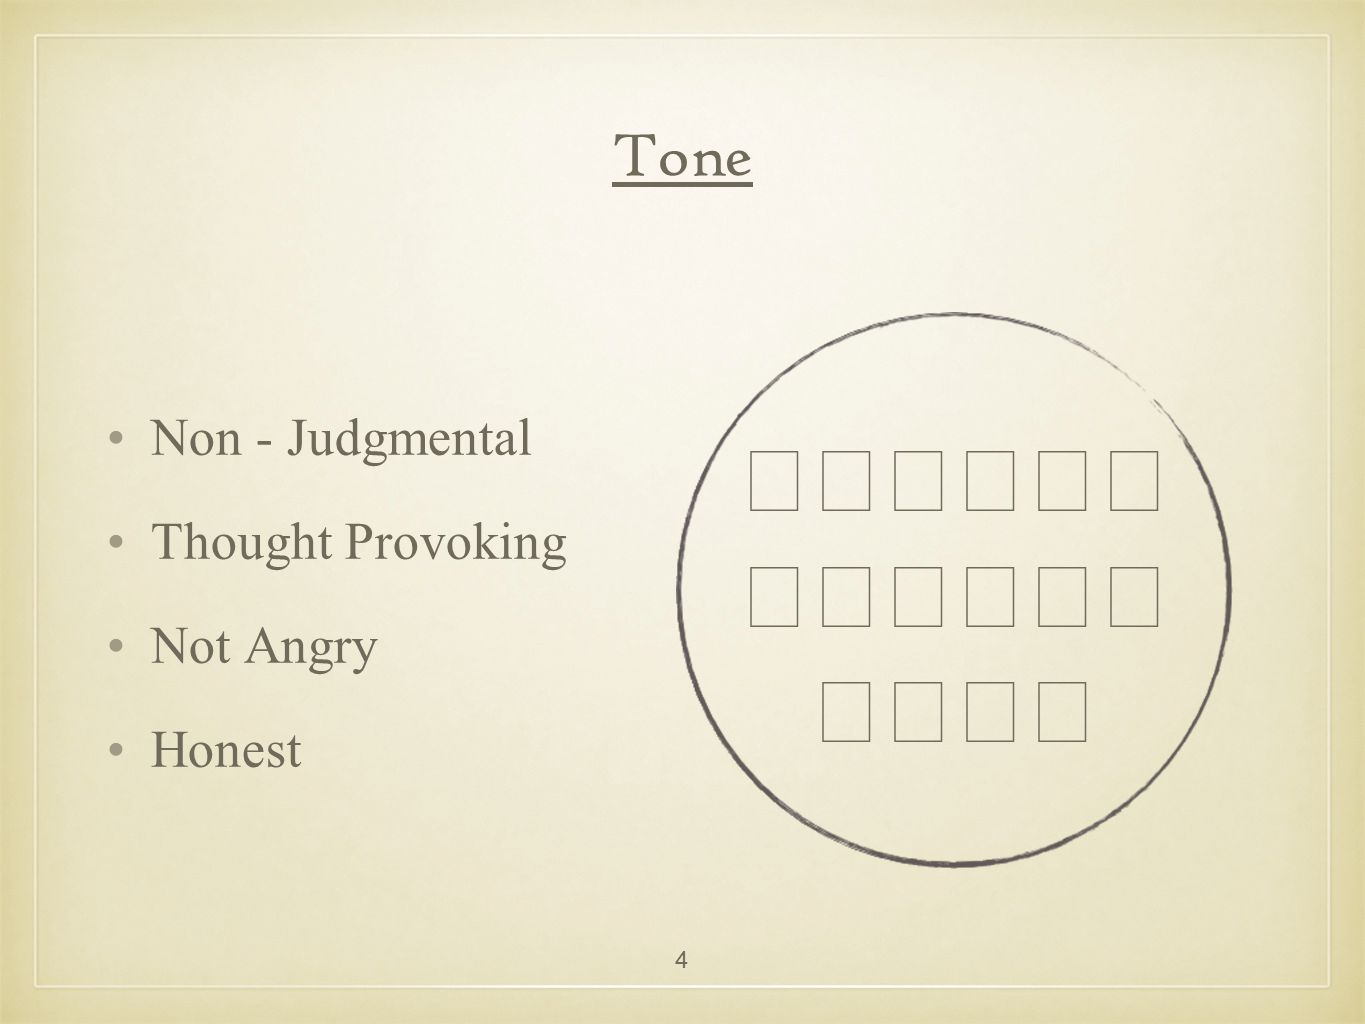 Tone Non - Judgmental Thought Provoking Not Angry Honest 4